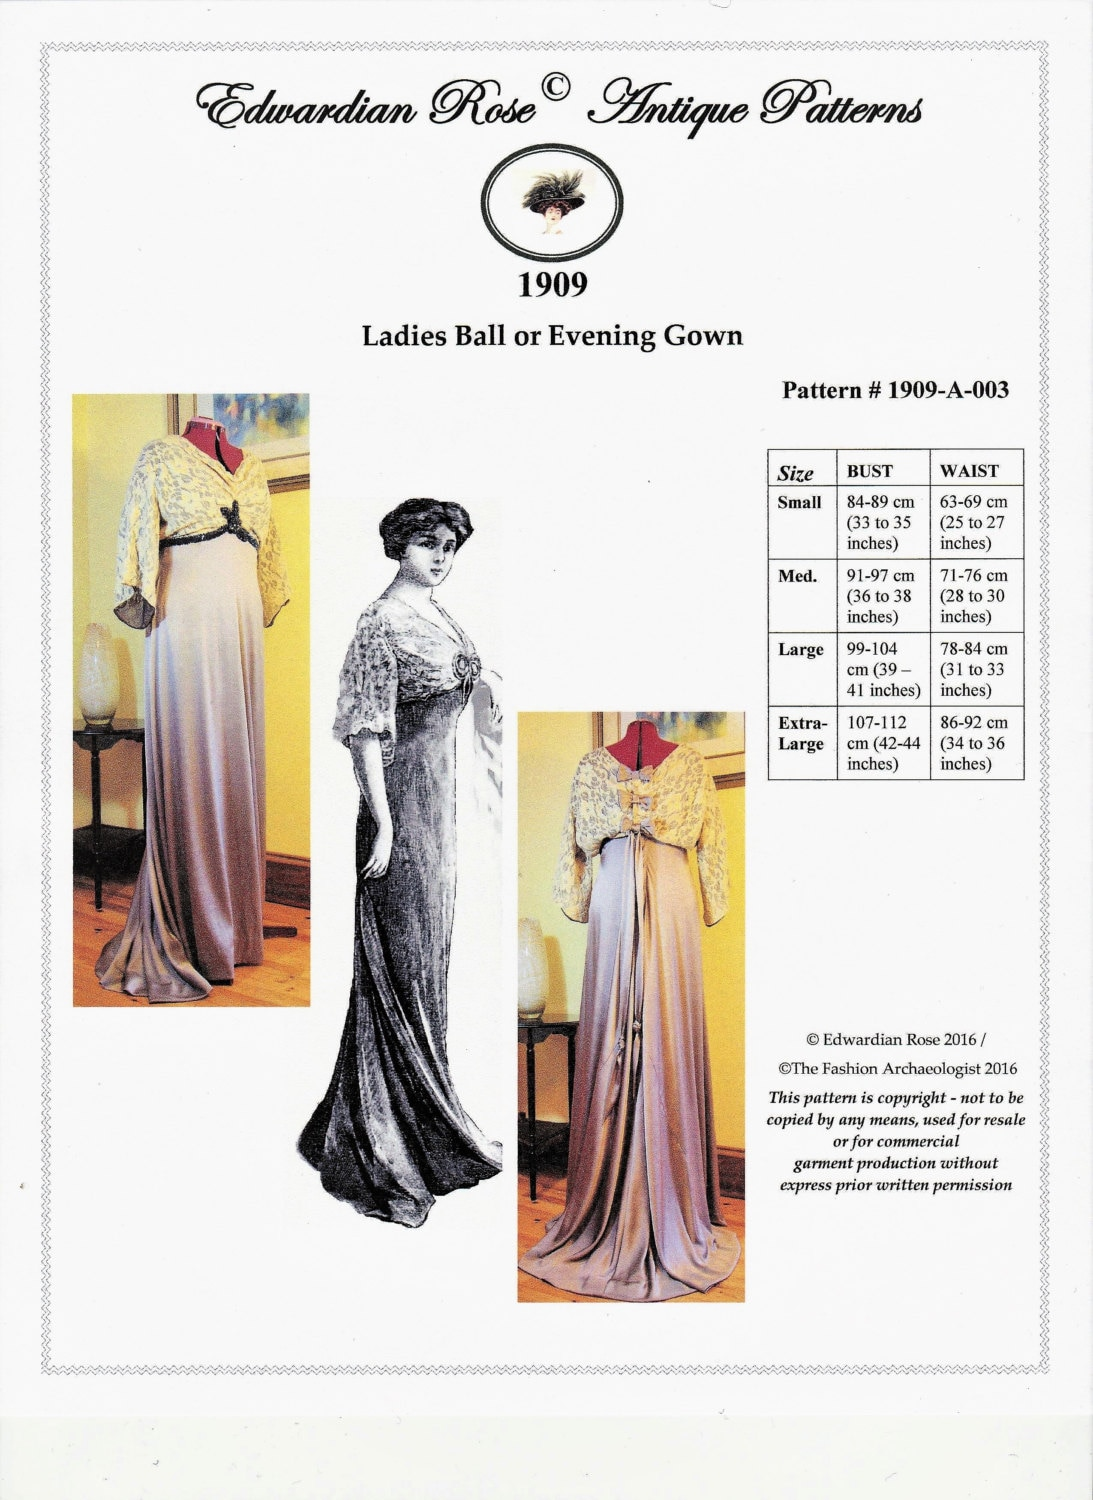 Edwardian Sewing Patterns- Dresses, Skirts, Blouses, Costumes  1909 Edwardian Titanic Grand Ball/Evening Gown (in PDF to print at home) Pattern #1909-A-003 $28.00 AT vintagedancer.com